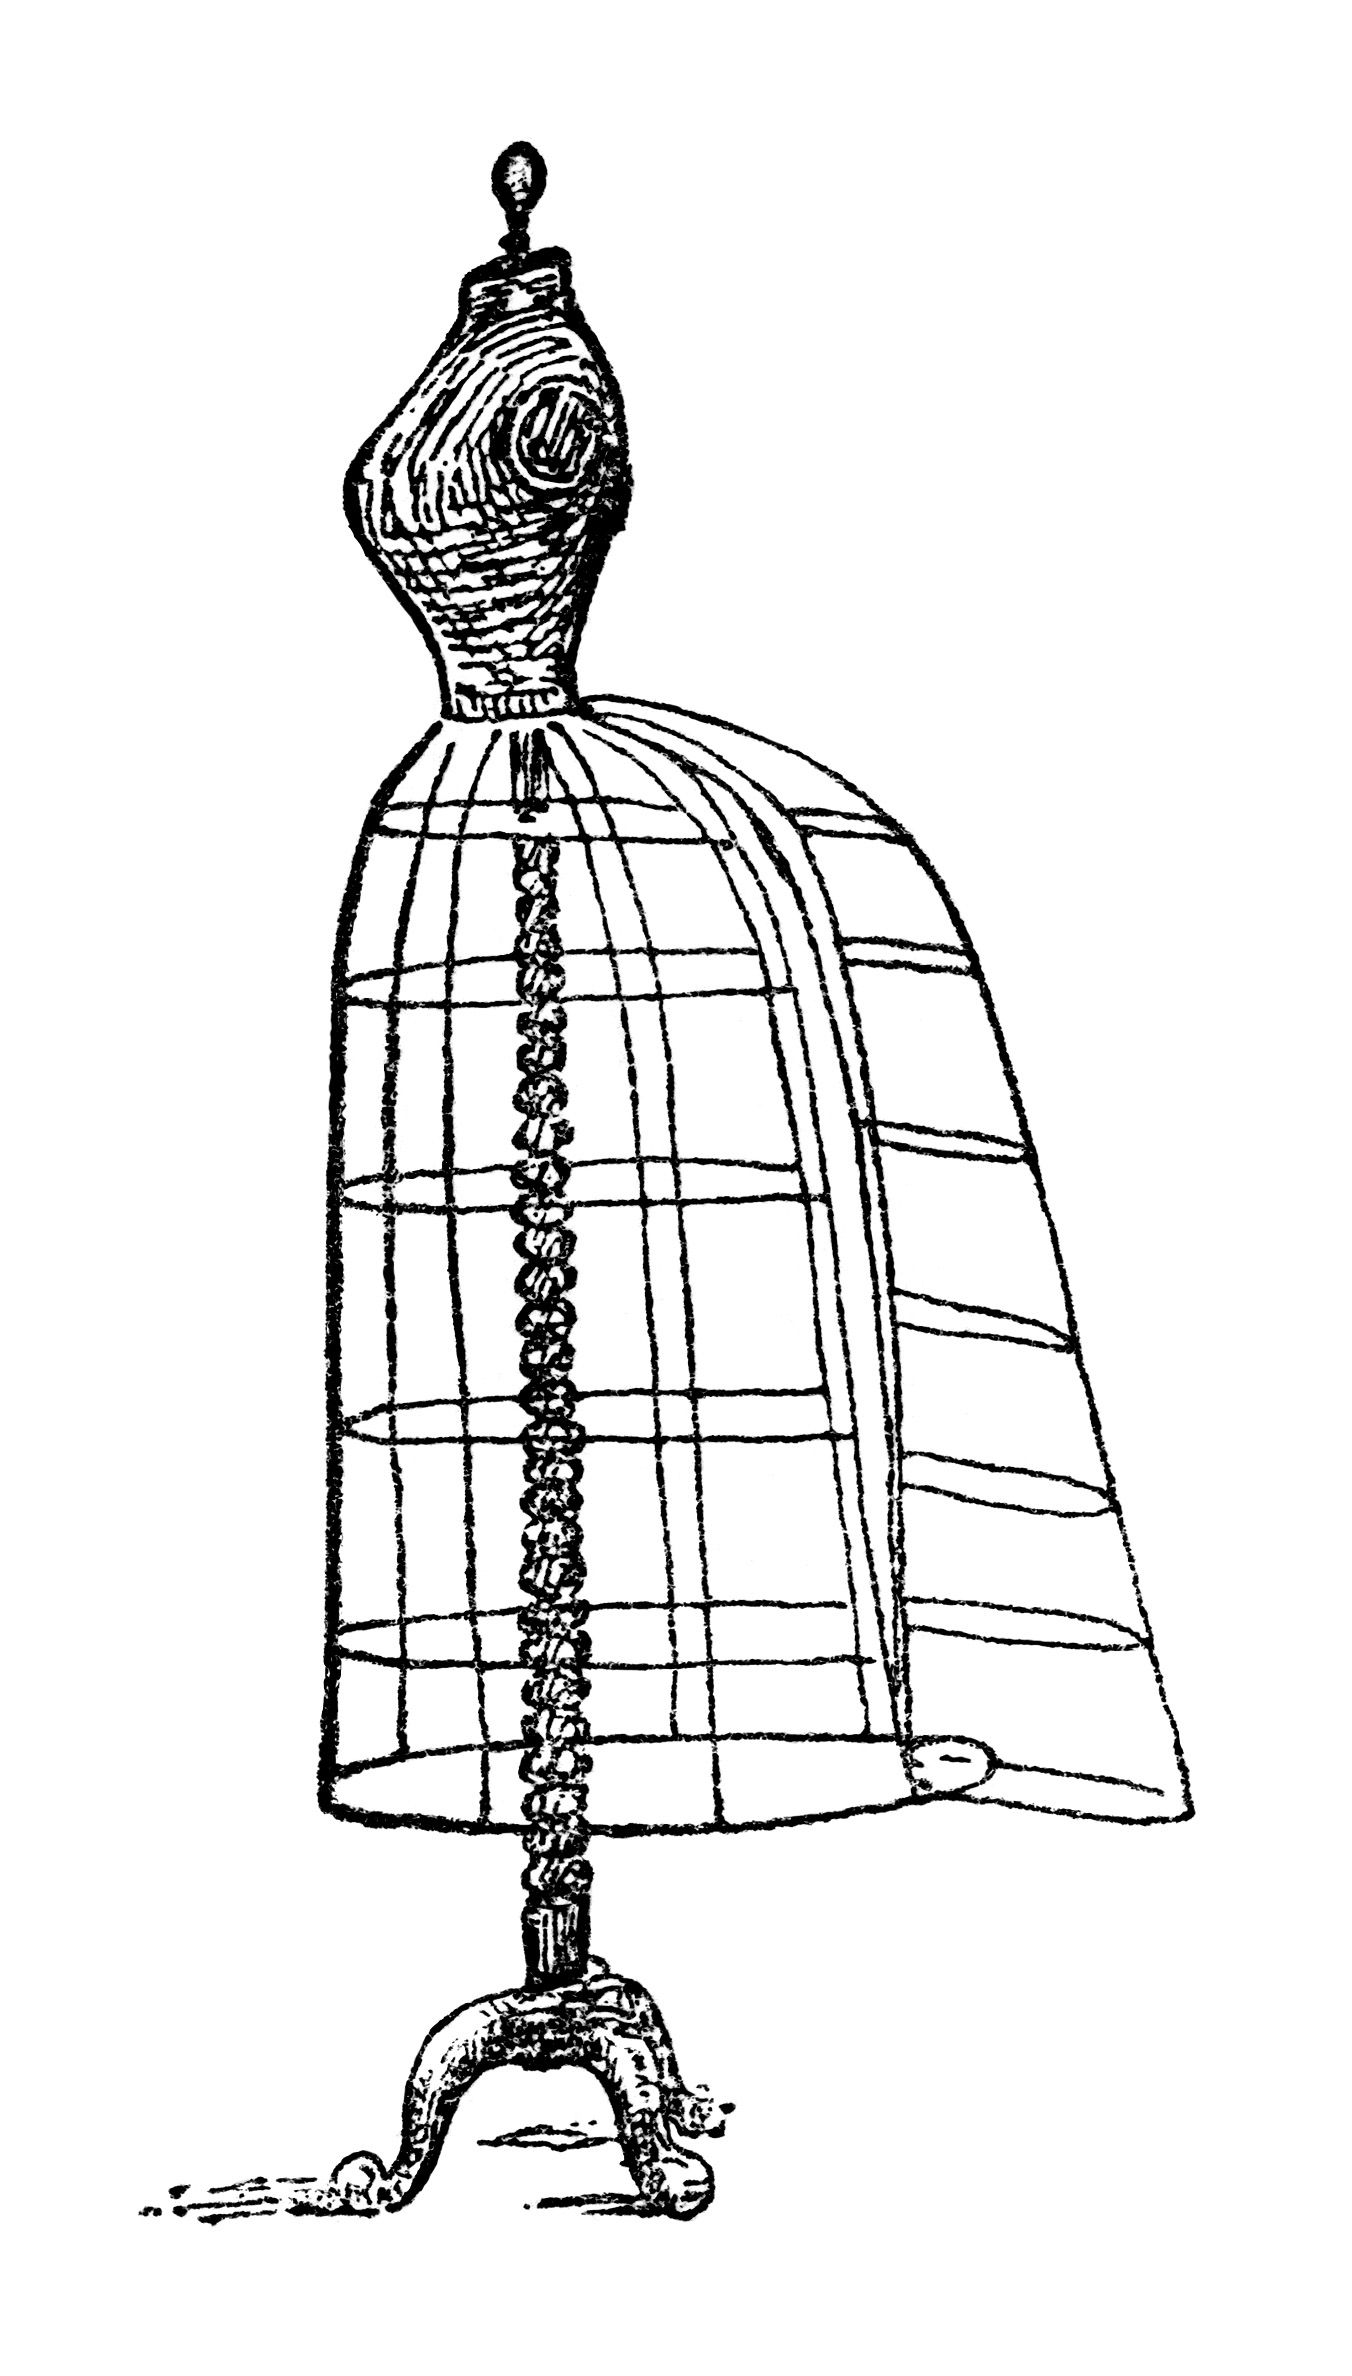 small resolution of sewing machine clip art black and white sewing clip art black and white clipart wire dress form illustration